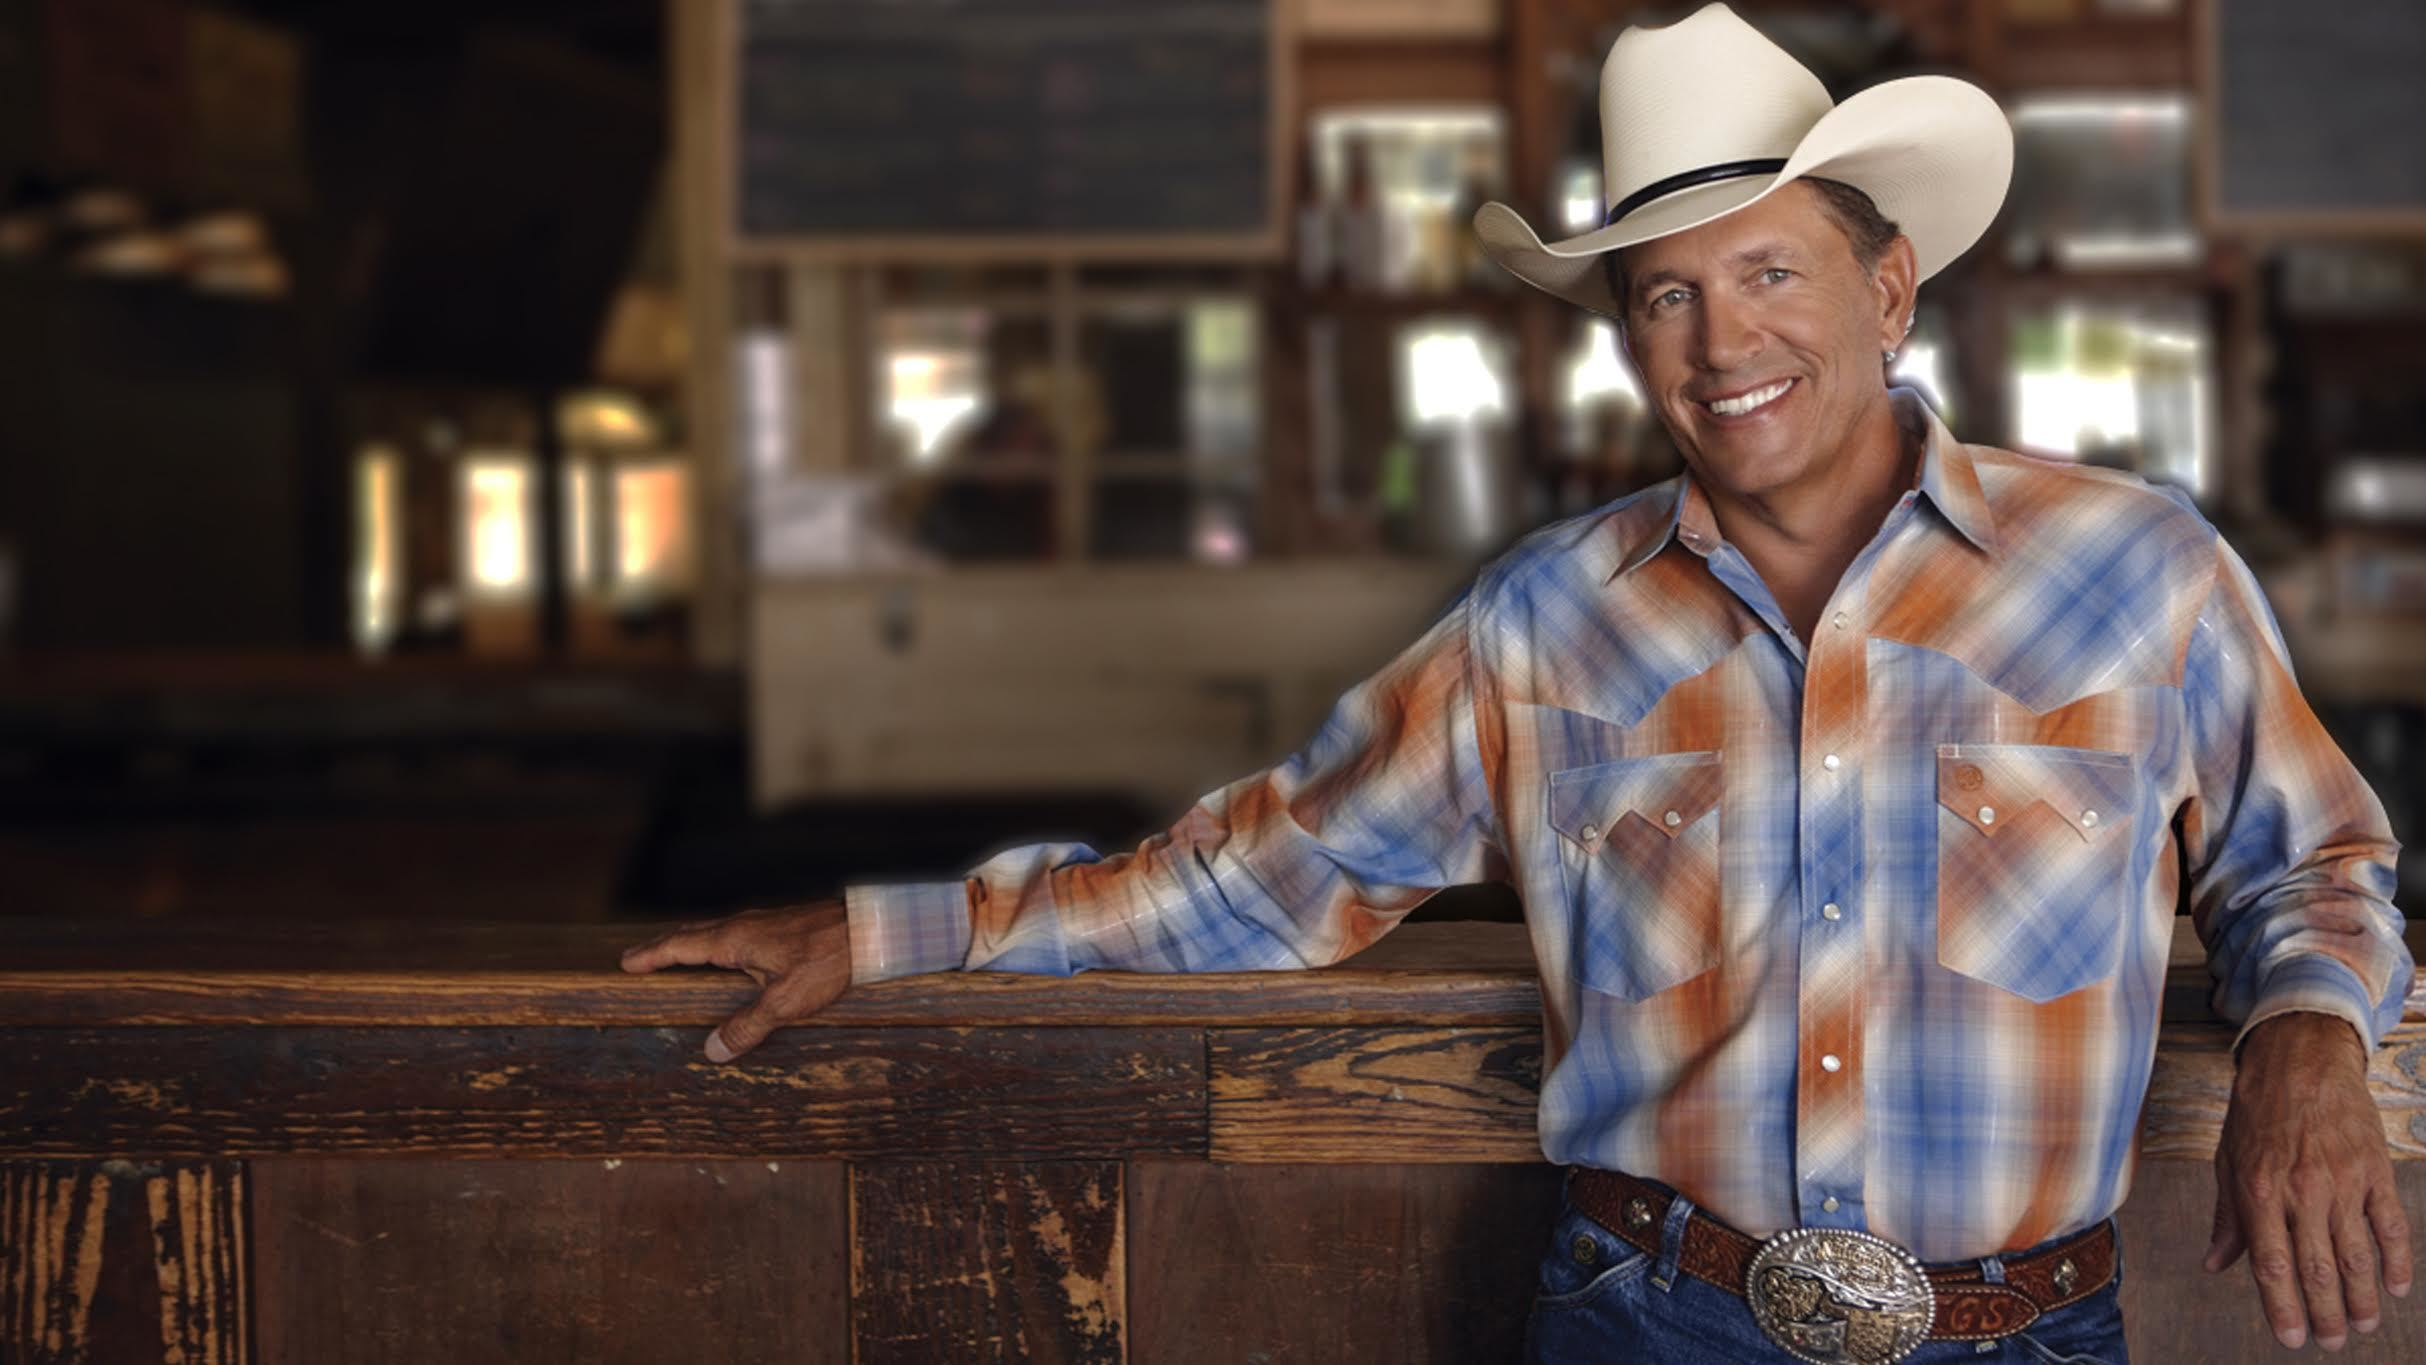 Charitybuzz Meet George Strait With 4 Tickets To His Show In Las